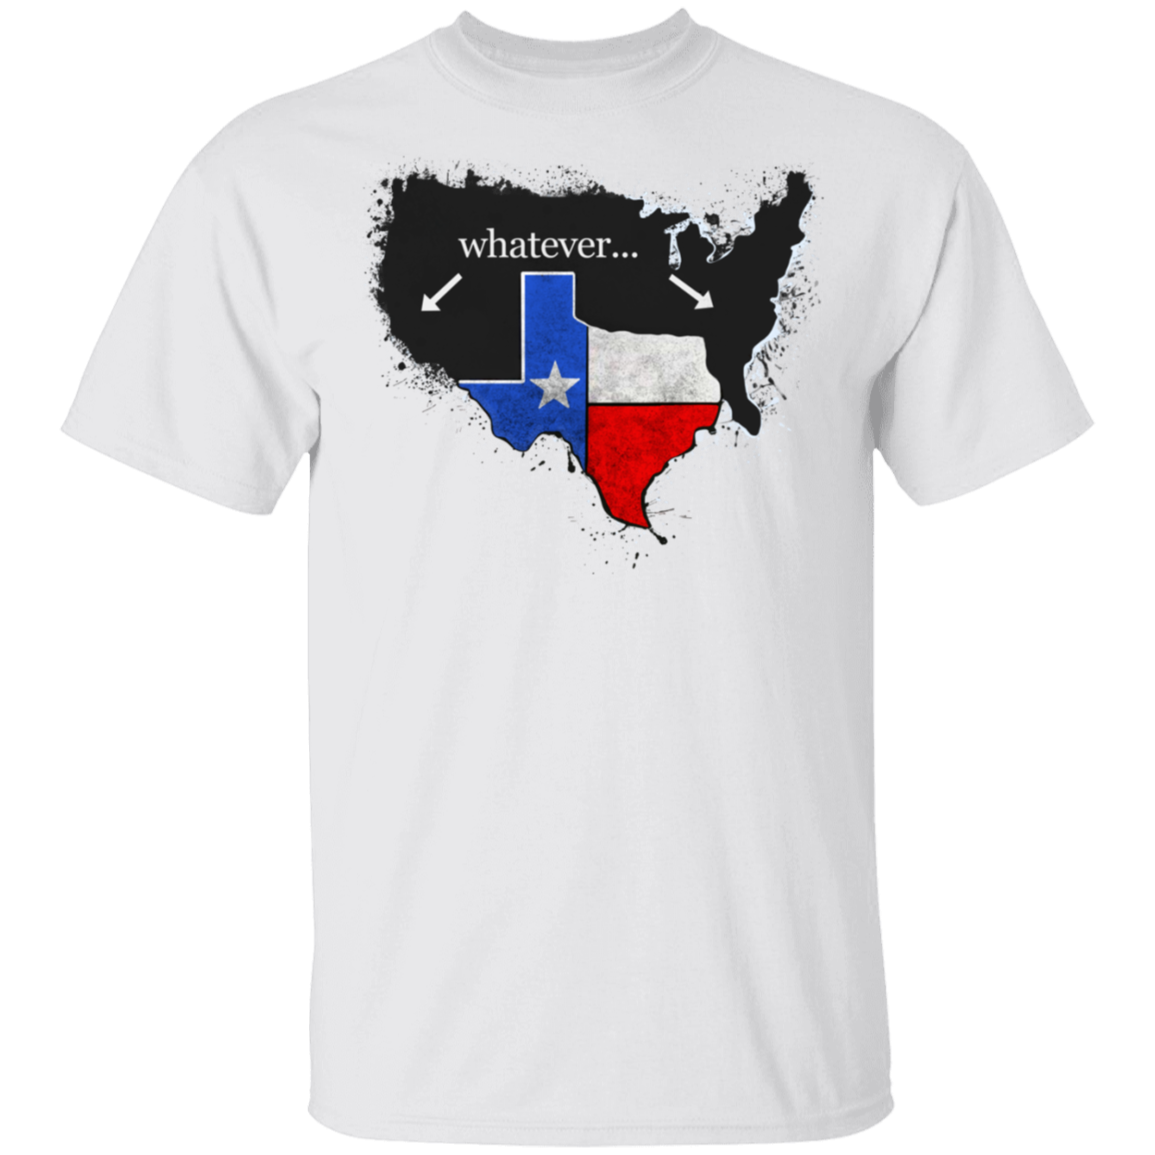 Whatever Texas State Flag With American Map T-Shirt Patriotic Texas Pride Apparel For Men